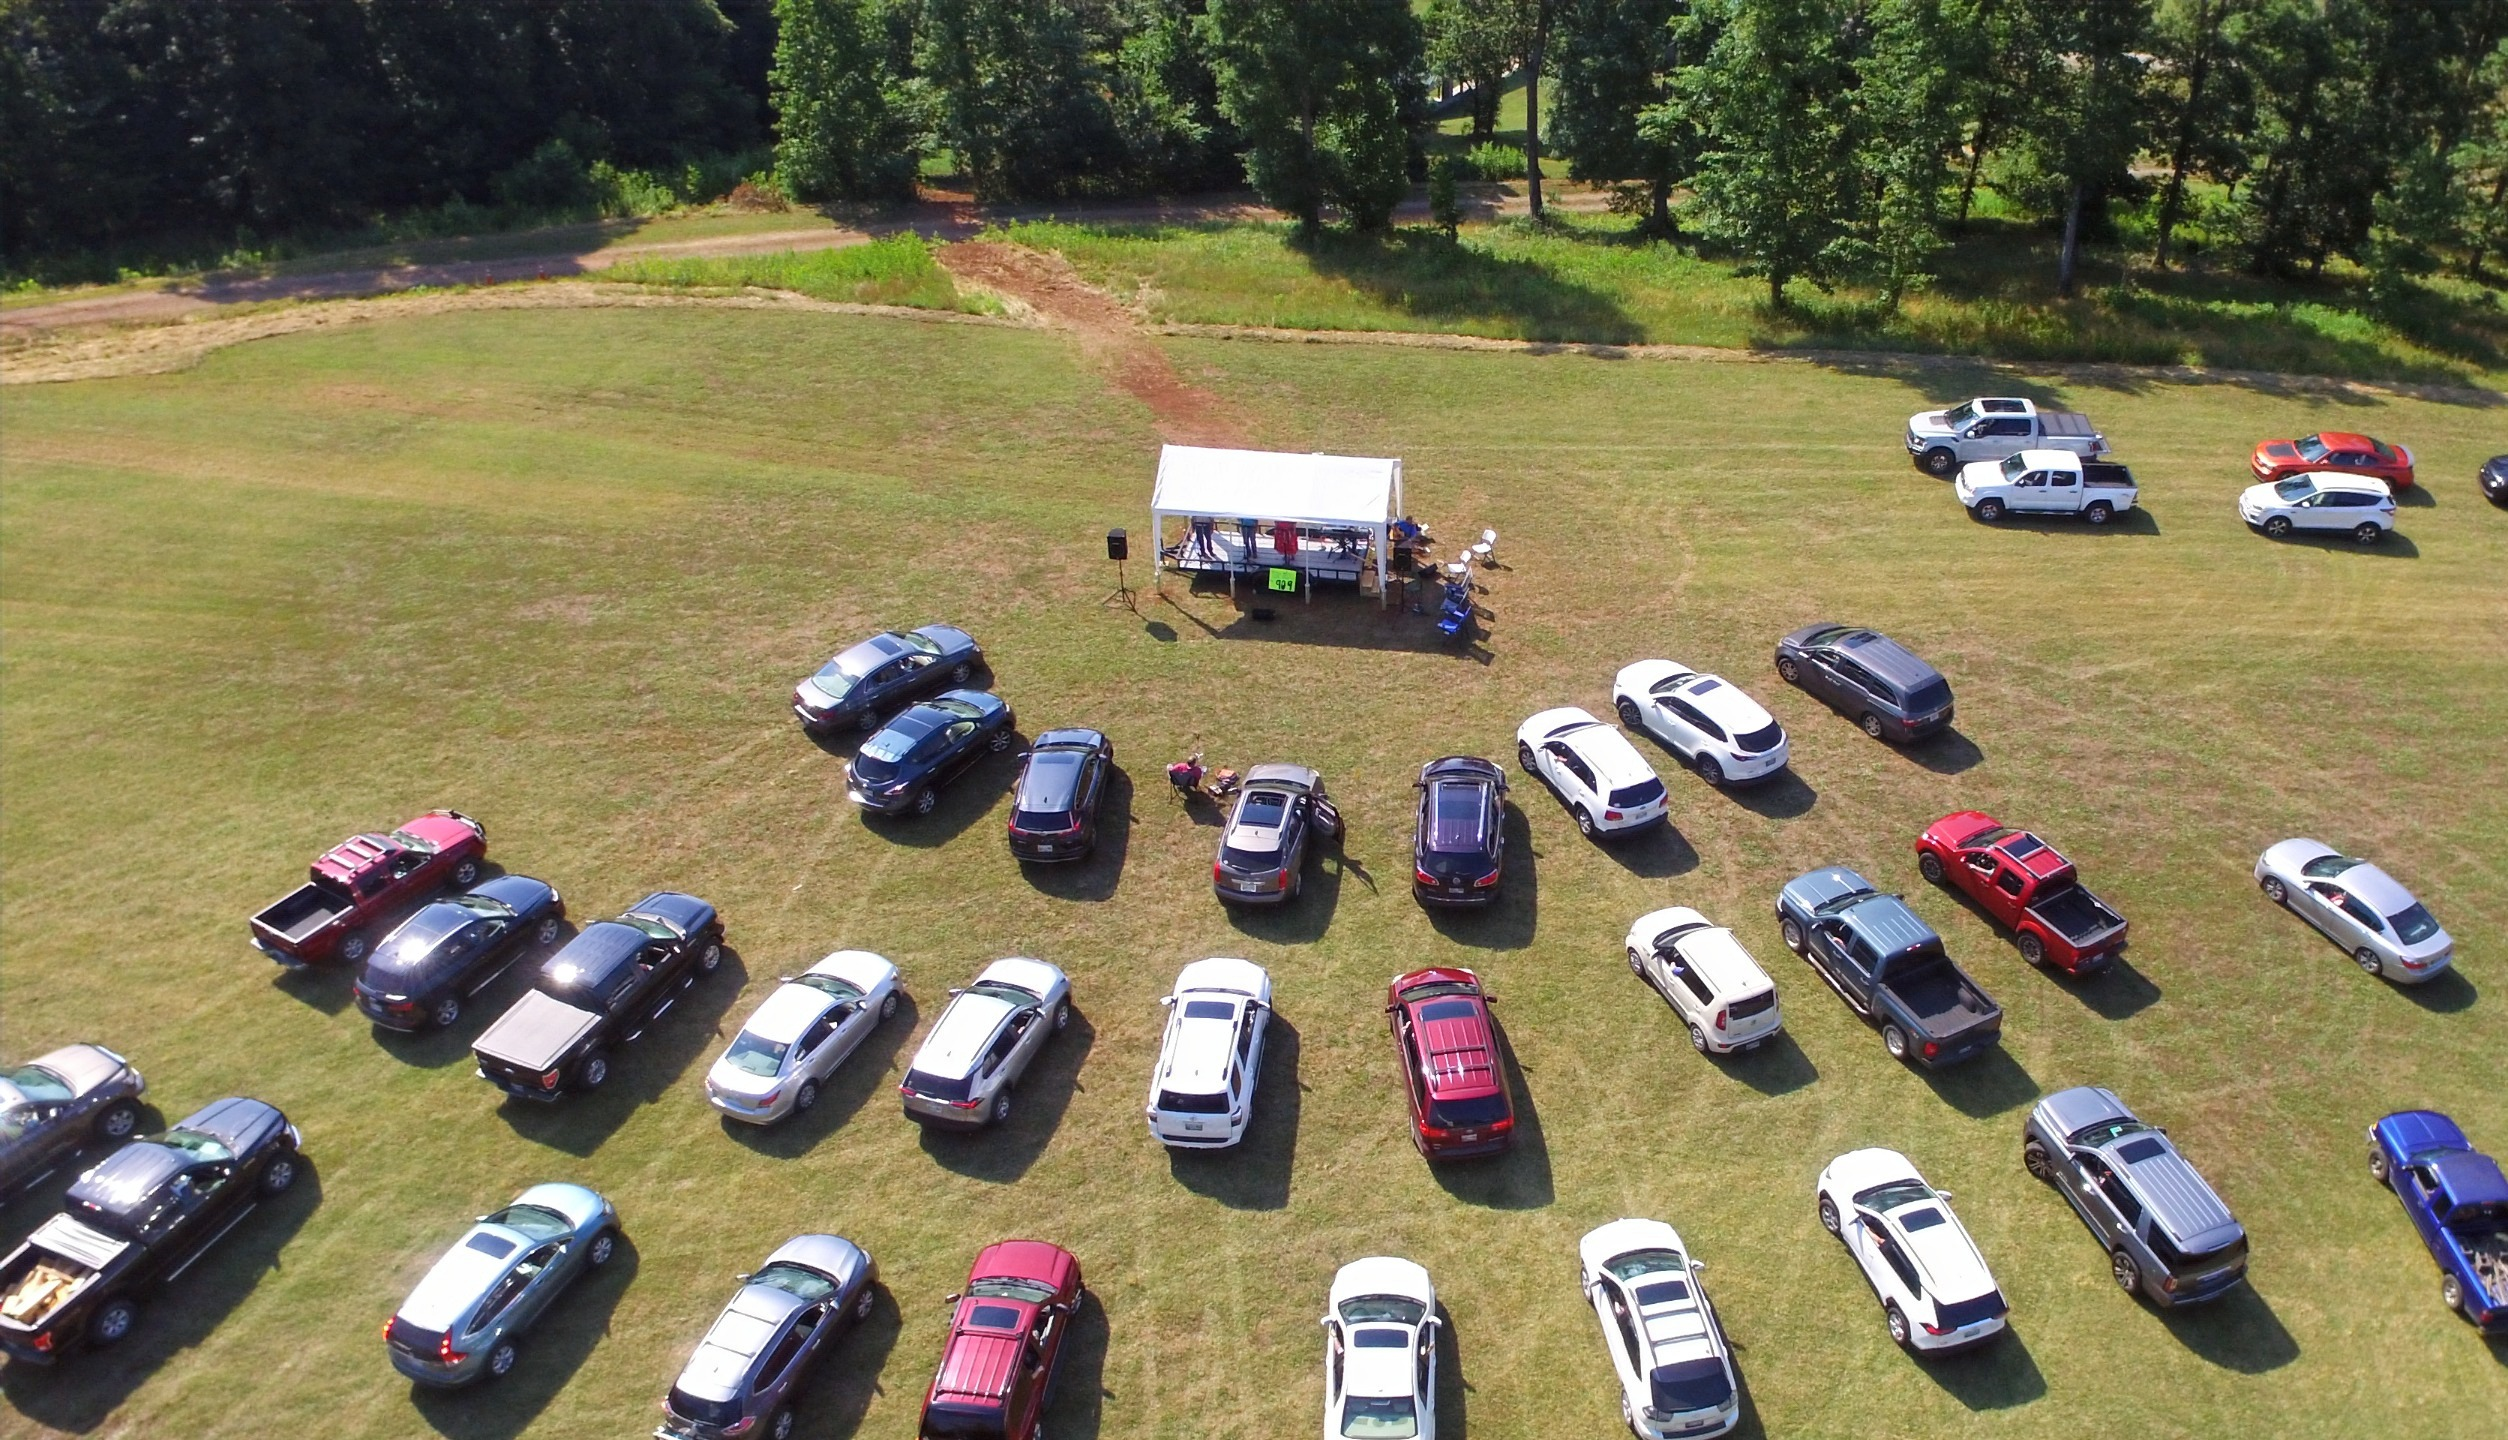 Drone%20Drive-IN_edited